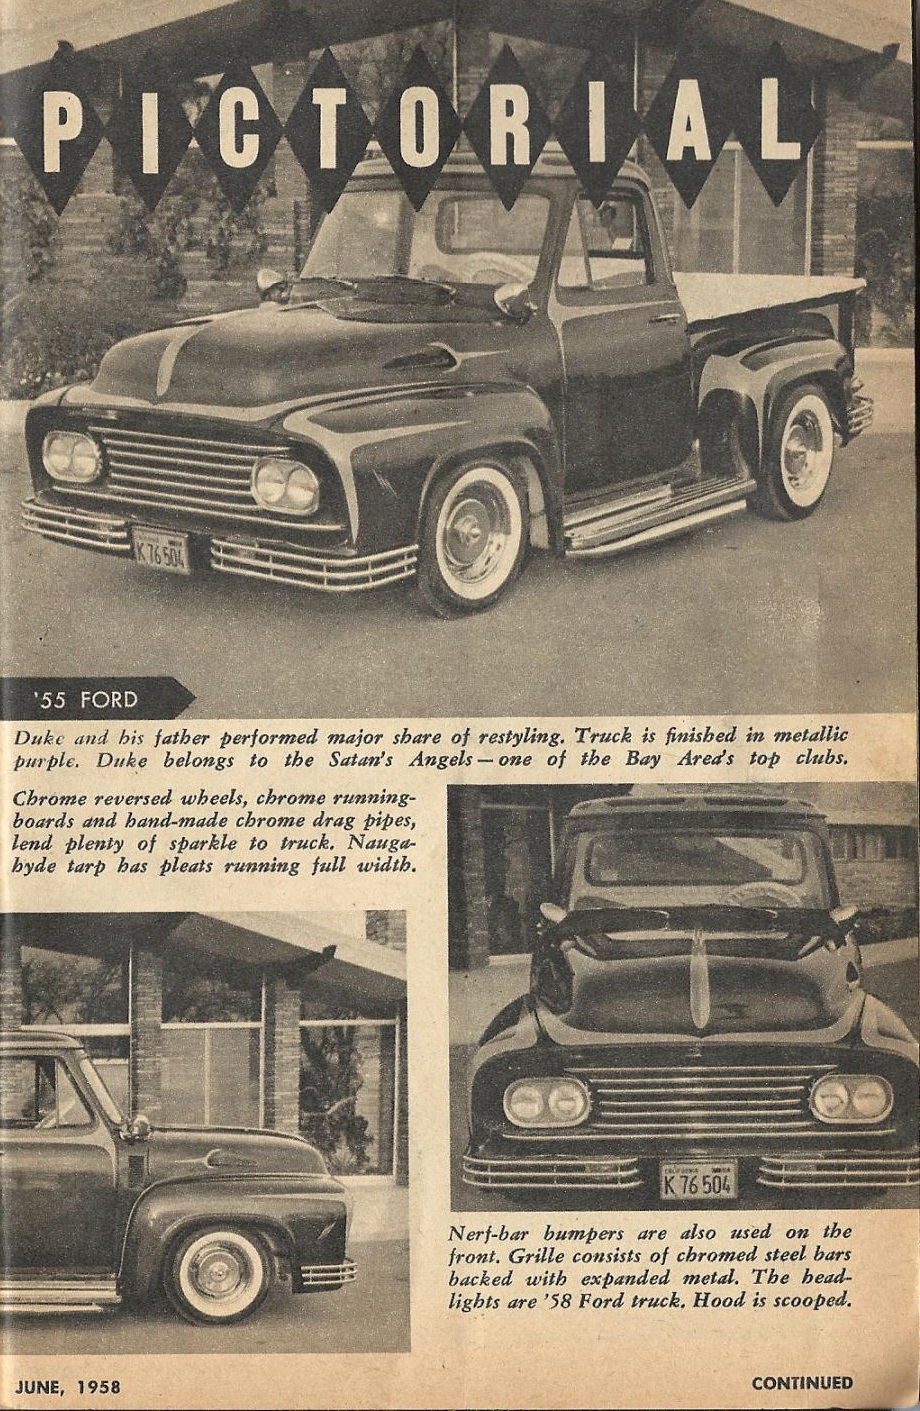 Car Craft - Special Pick Up June 1959 - Pick up Pictorial 1327